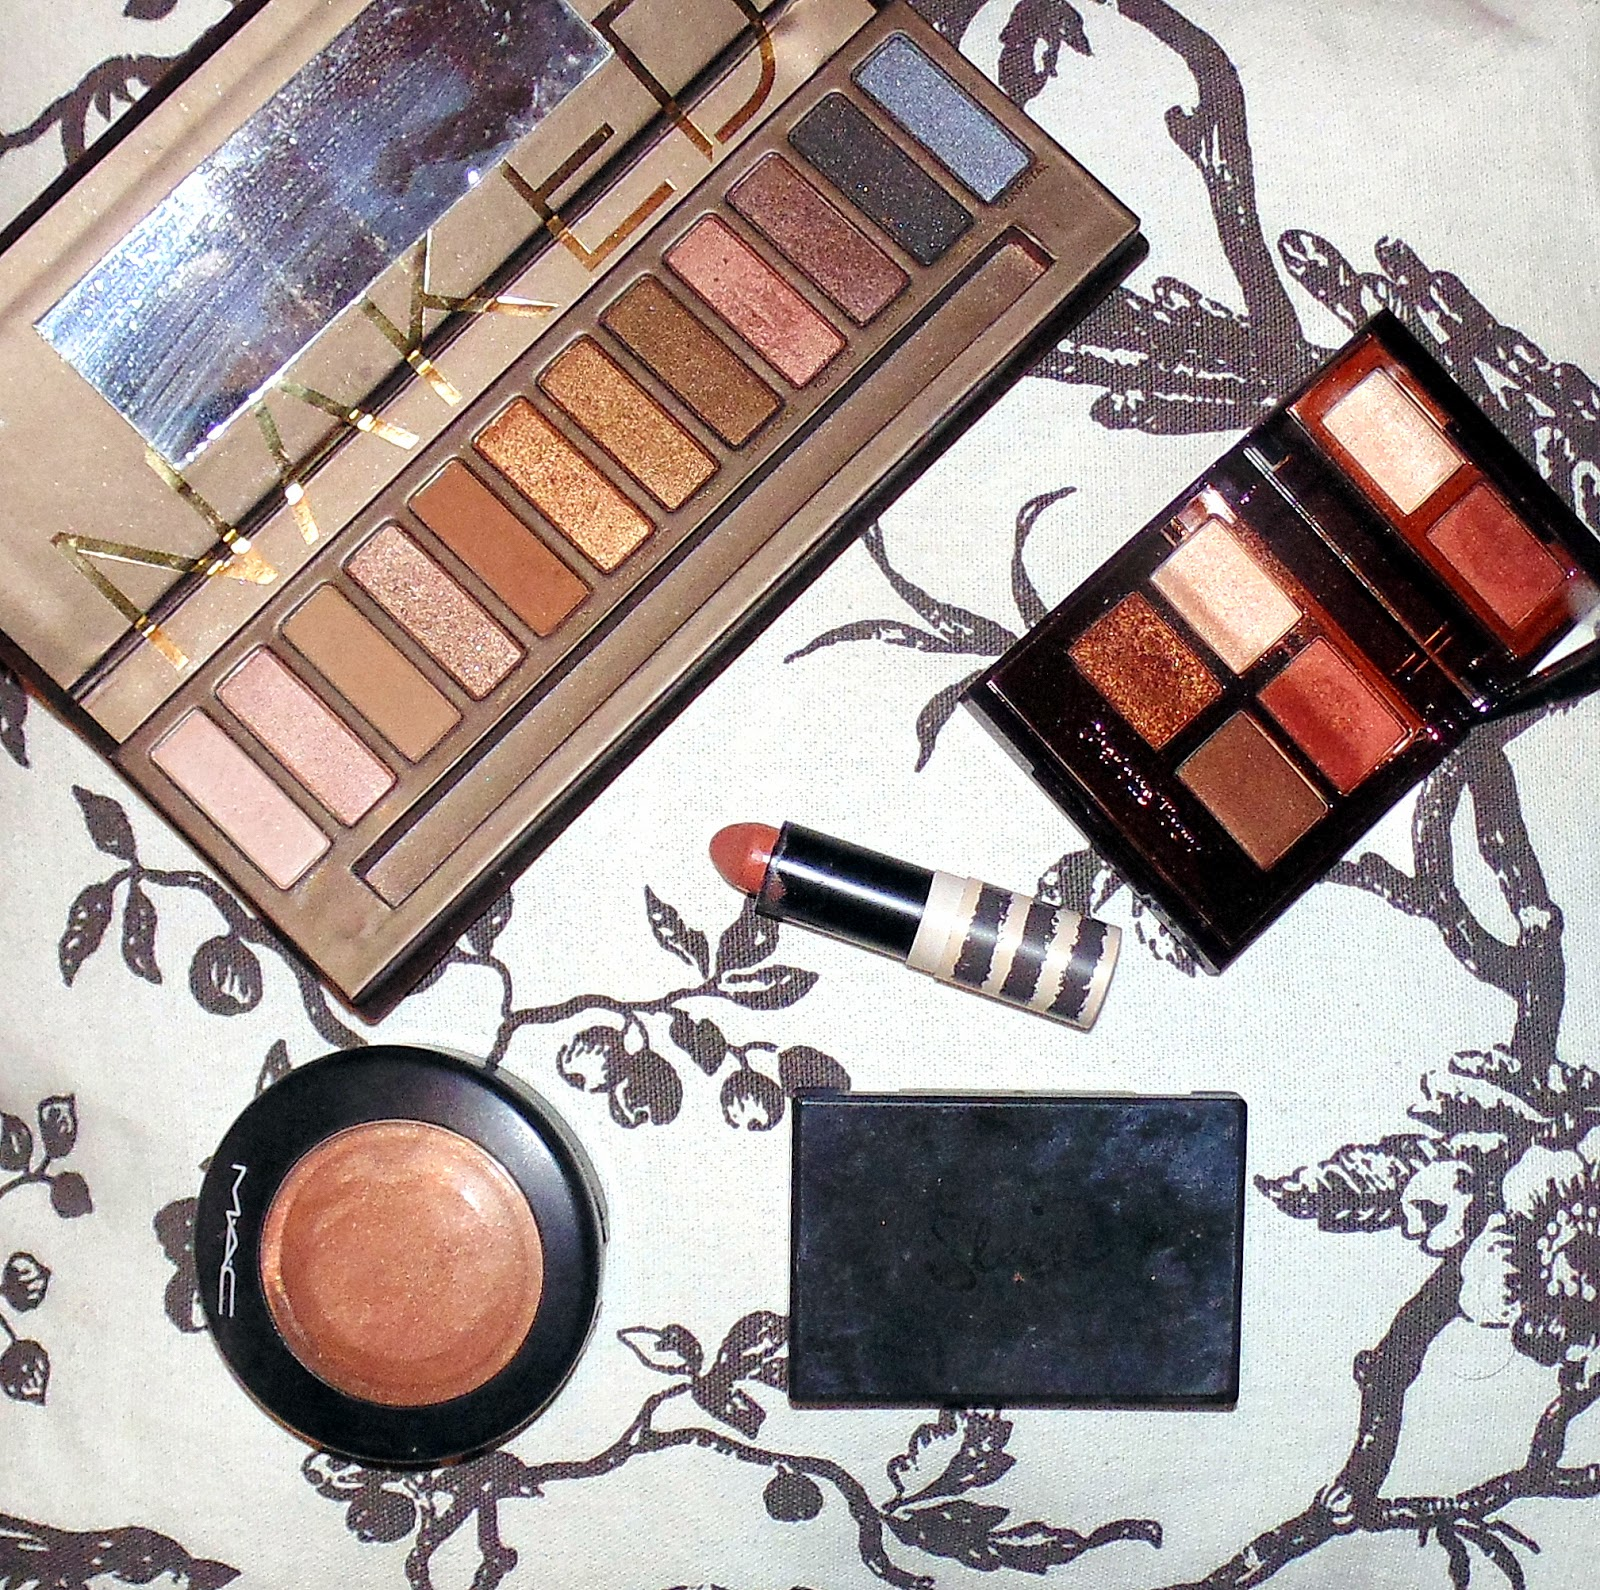 January favourites naked 1 urban decay charlotte tilbury mac and sleek